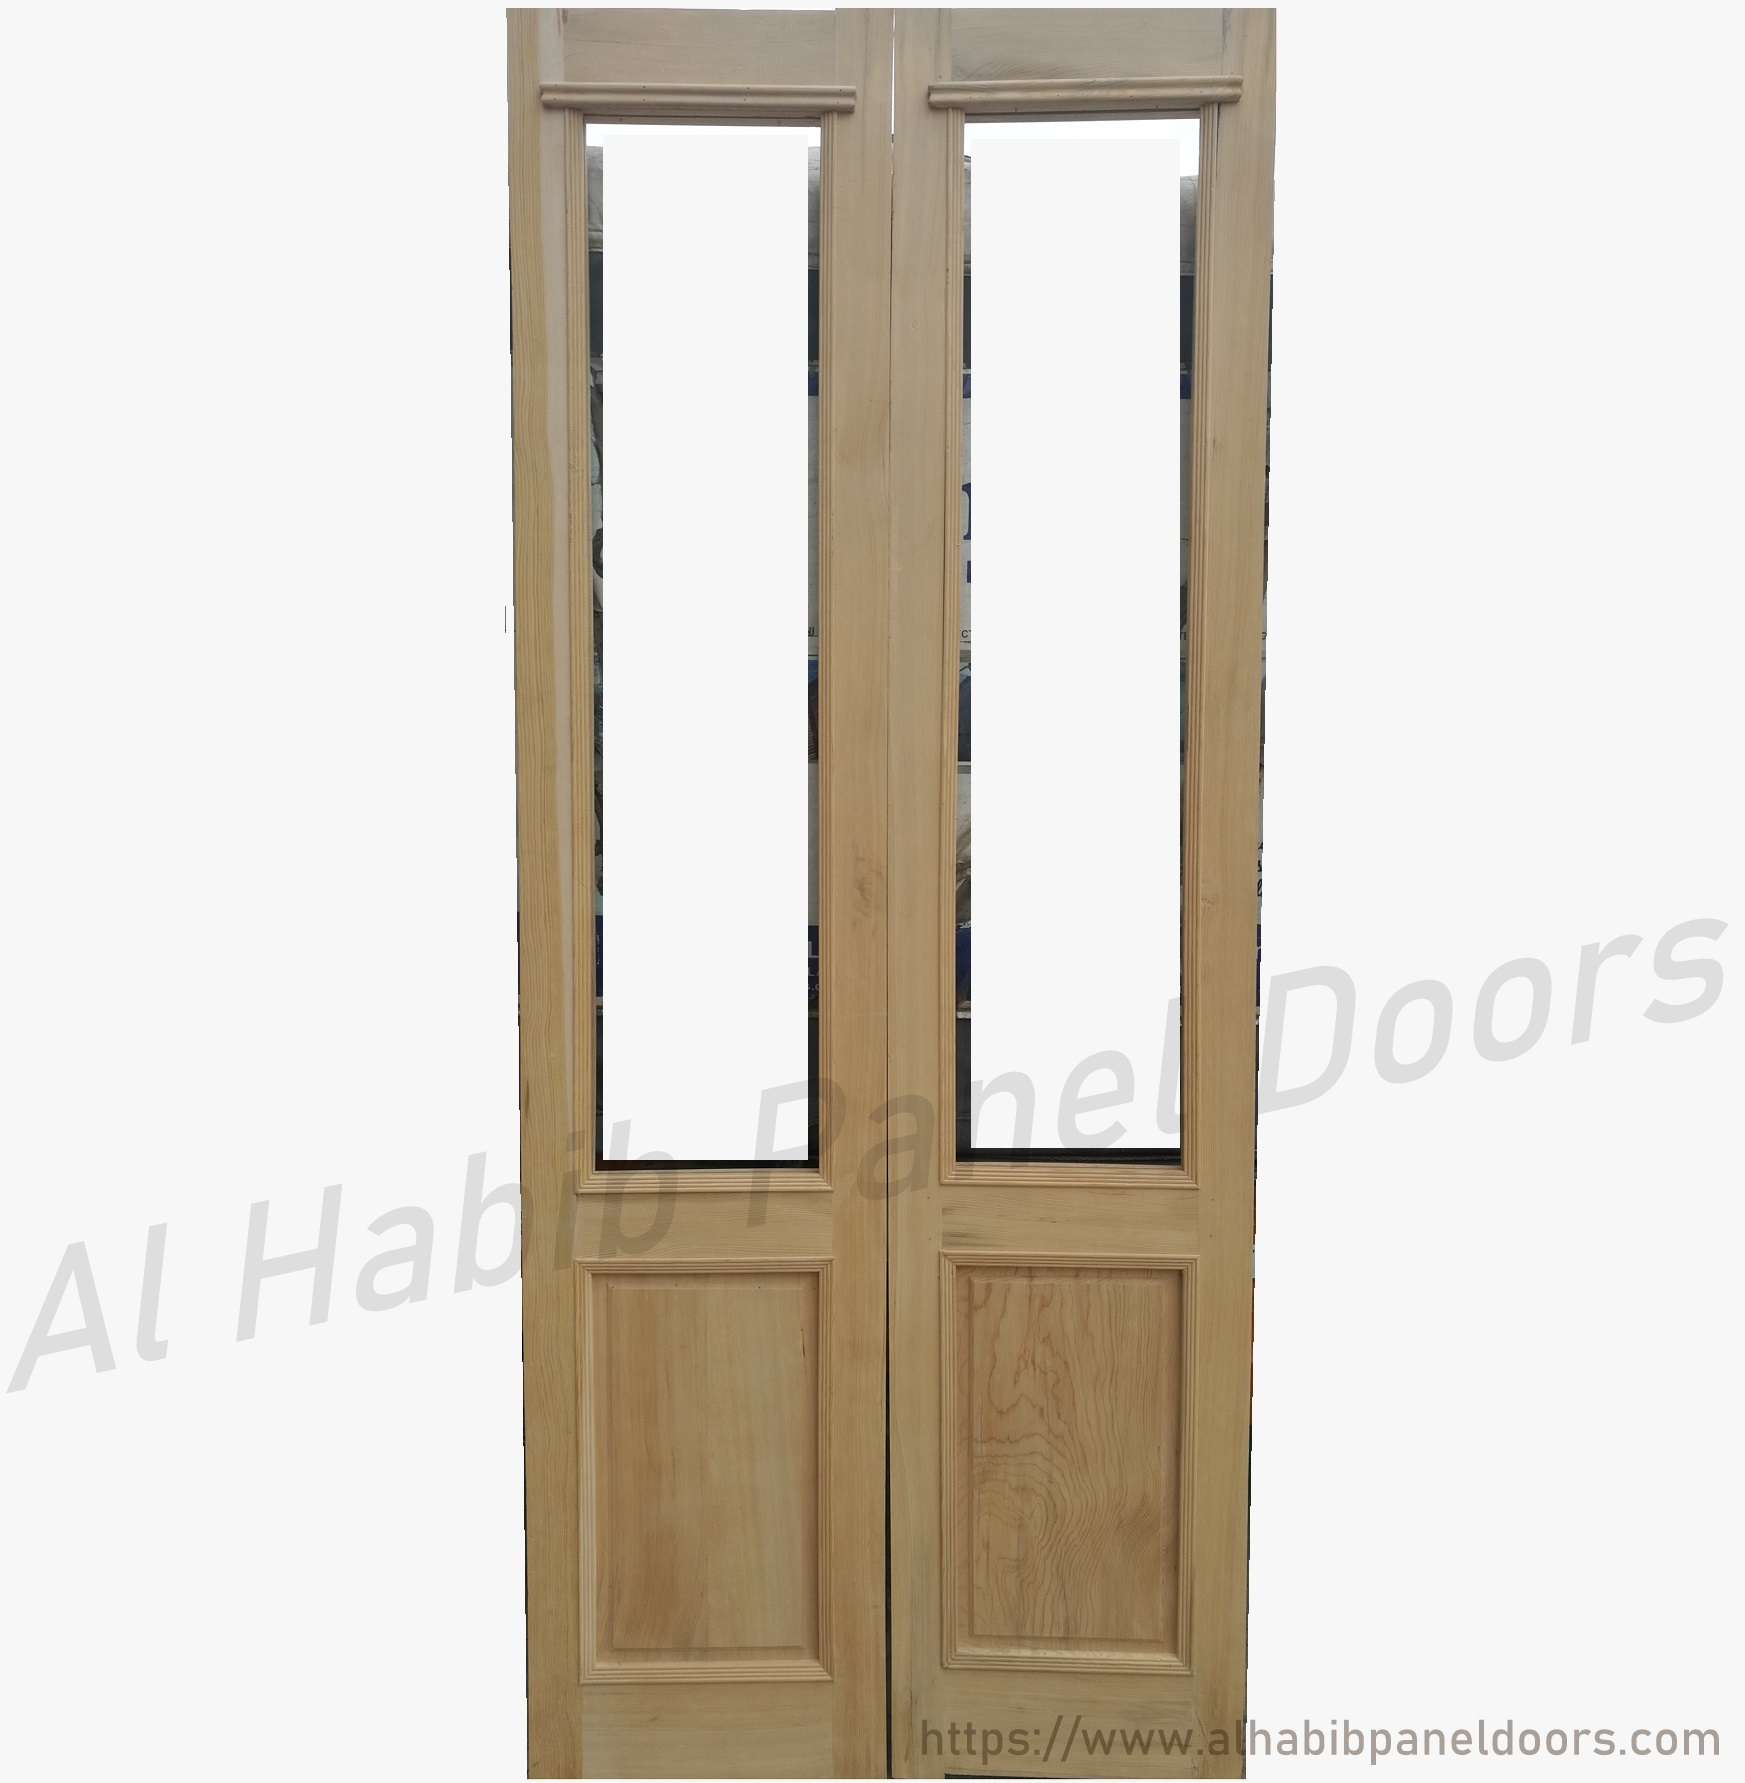 wood interior door with glass hpd175 glass panel doors al habib panel doors